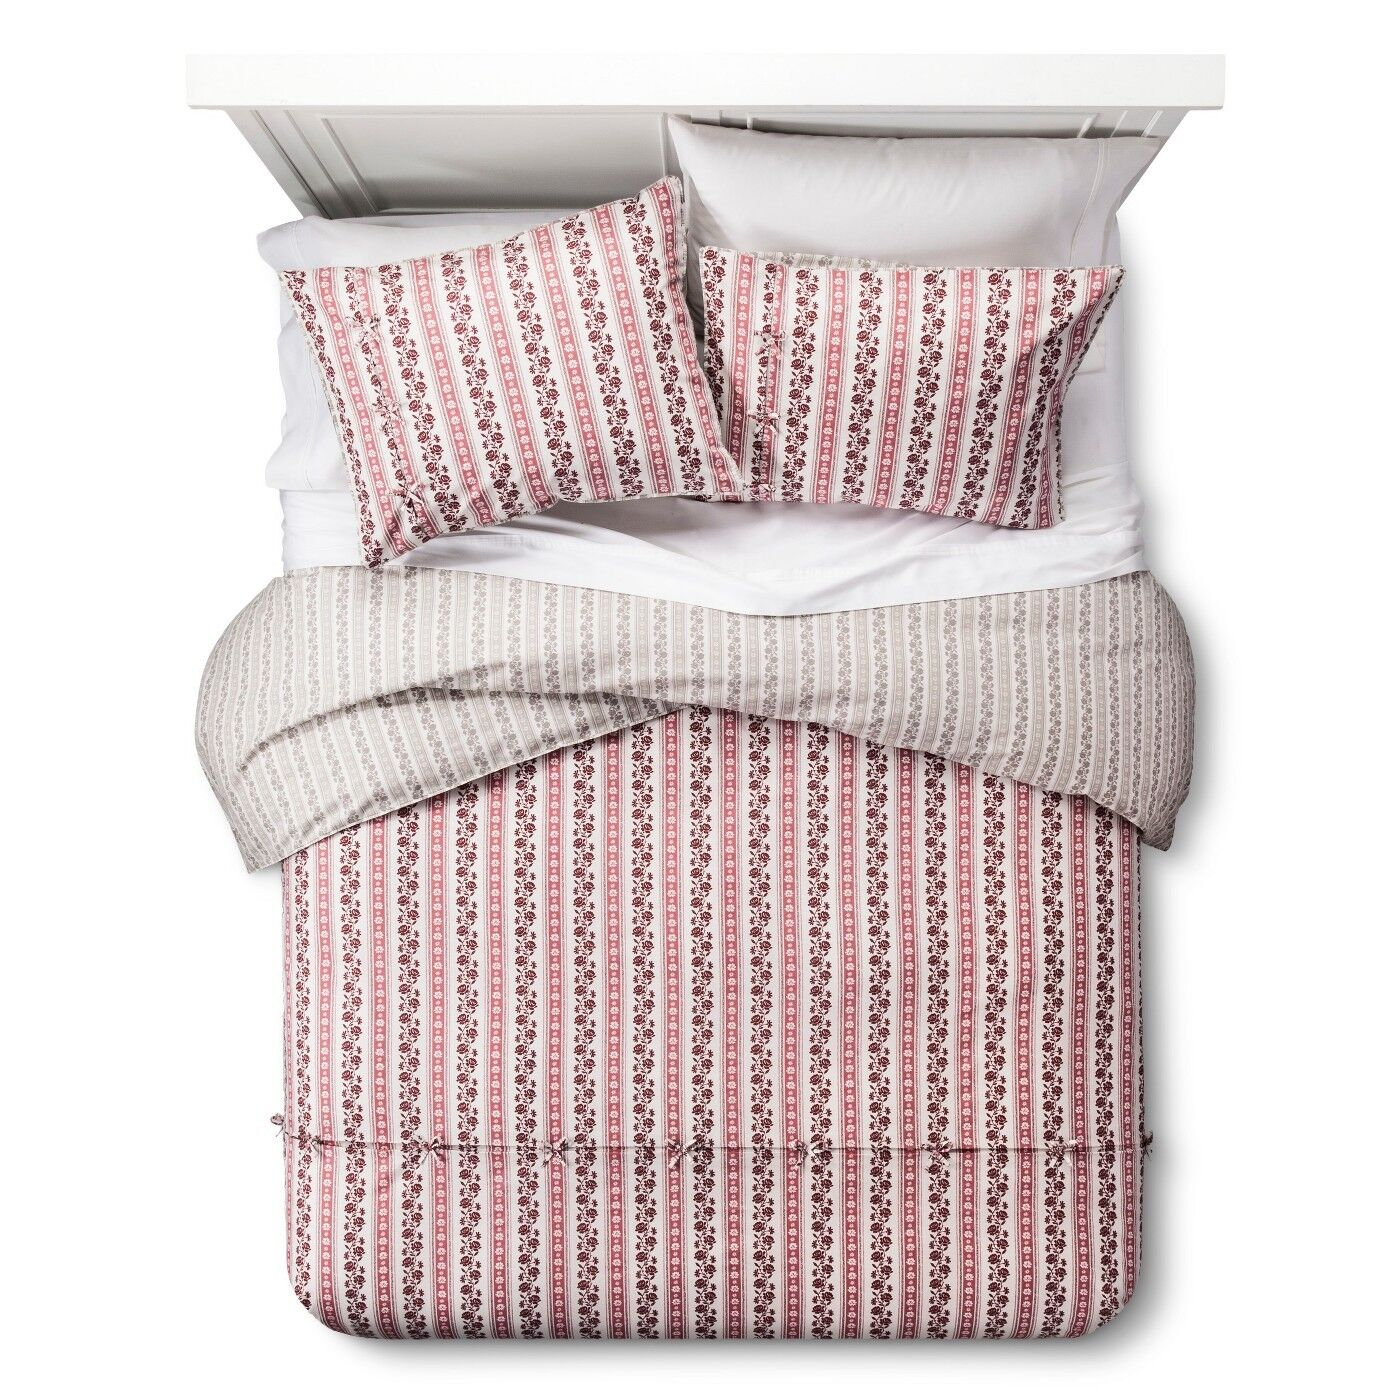 Darby Way Reversible Duvet Cover & Sham Set (Full/Queen) Red 3-Pc Beekman 1802 Bedding